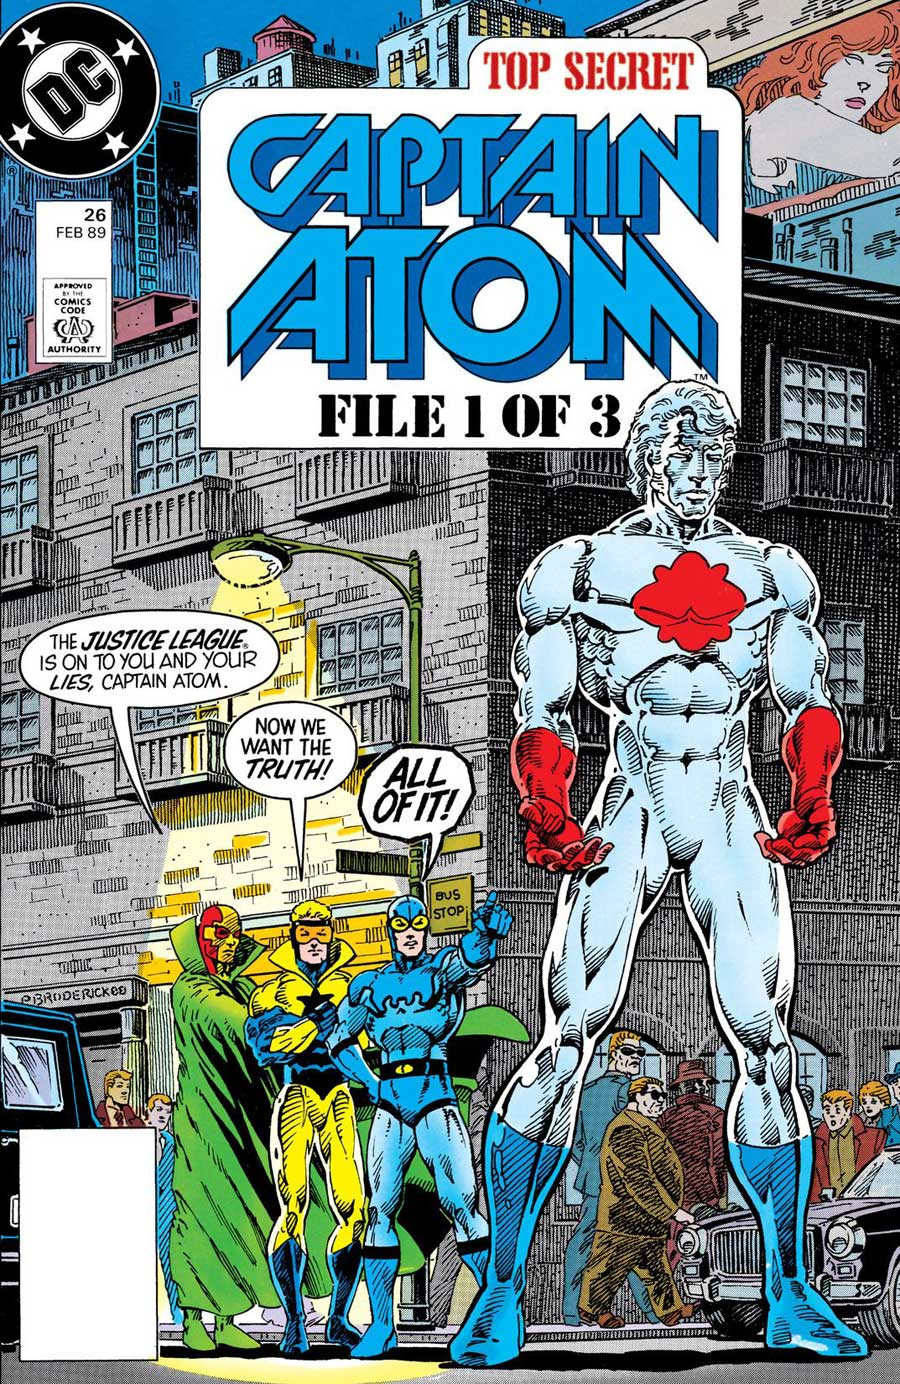 Captain Atom #26 cover by Pat Broderick